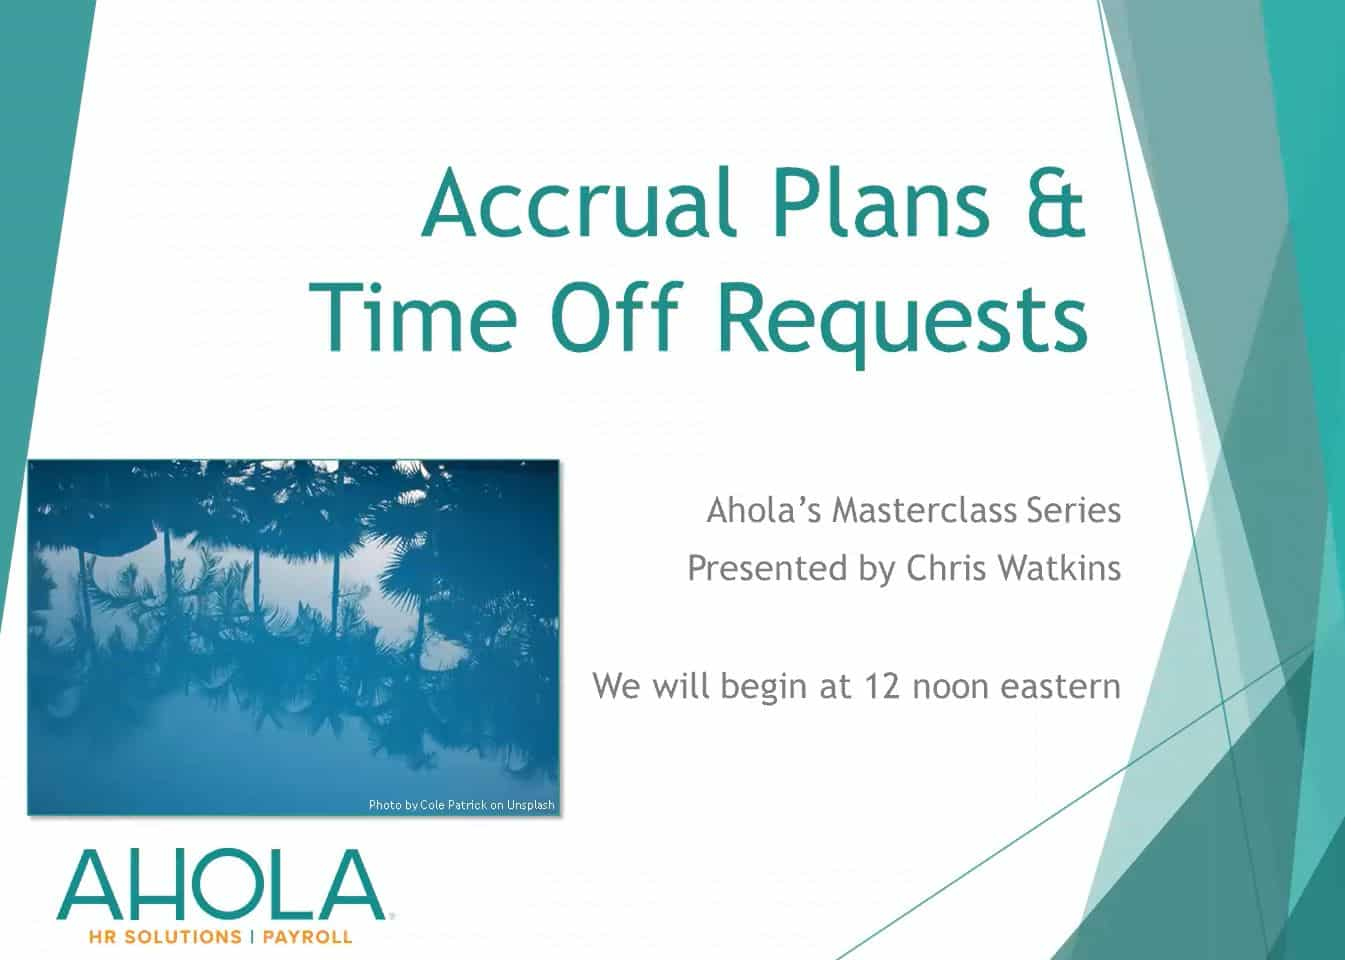 Accrual Plans and Time-Off Requests